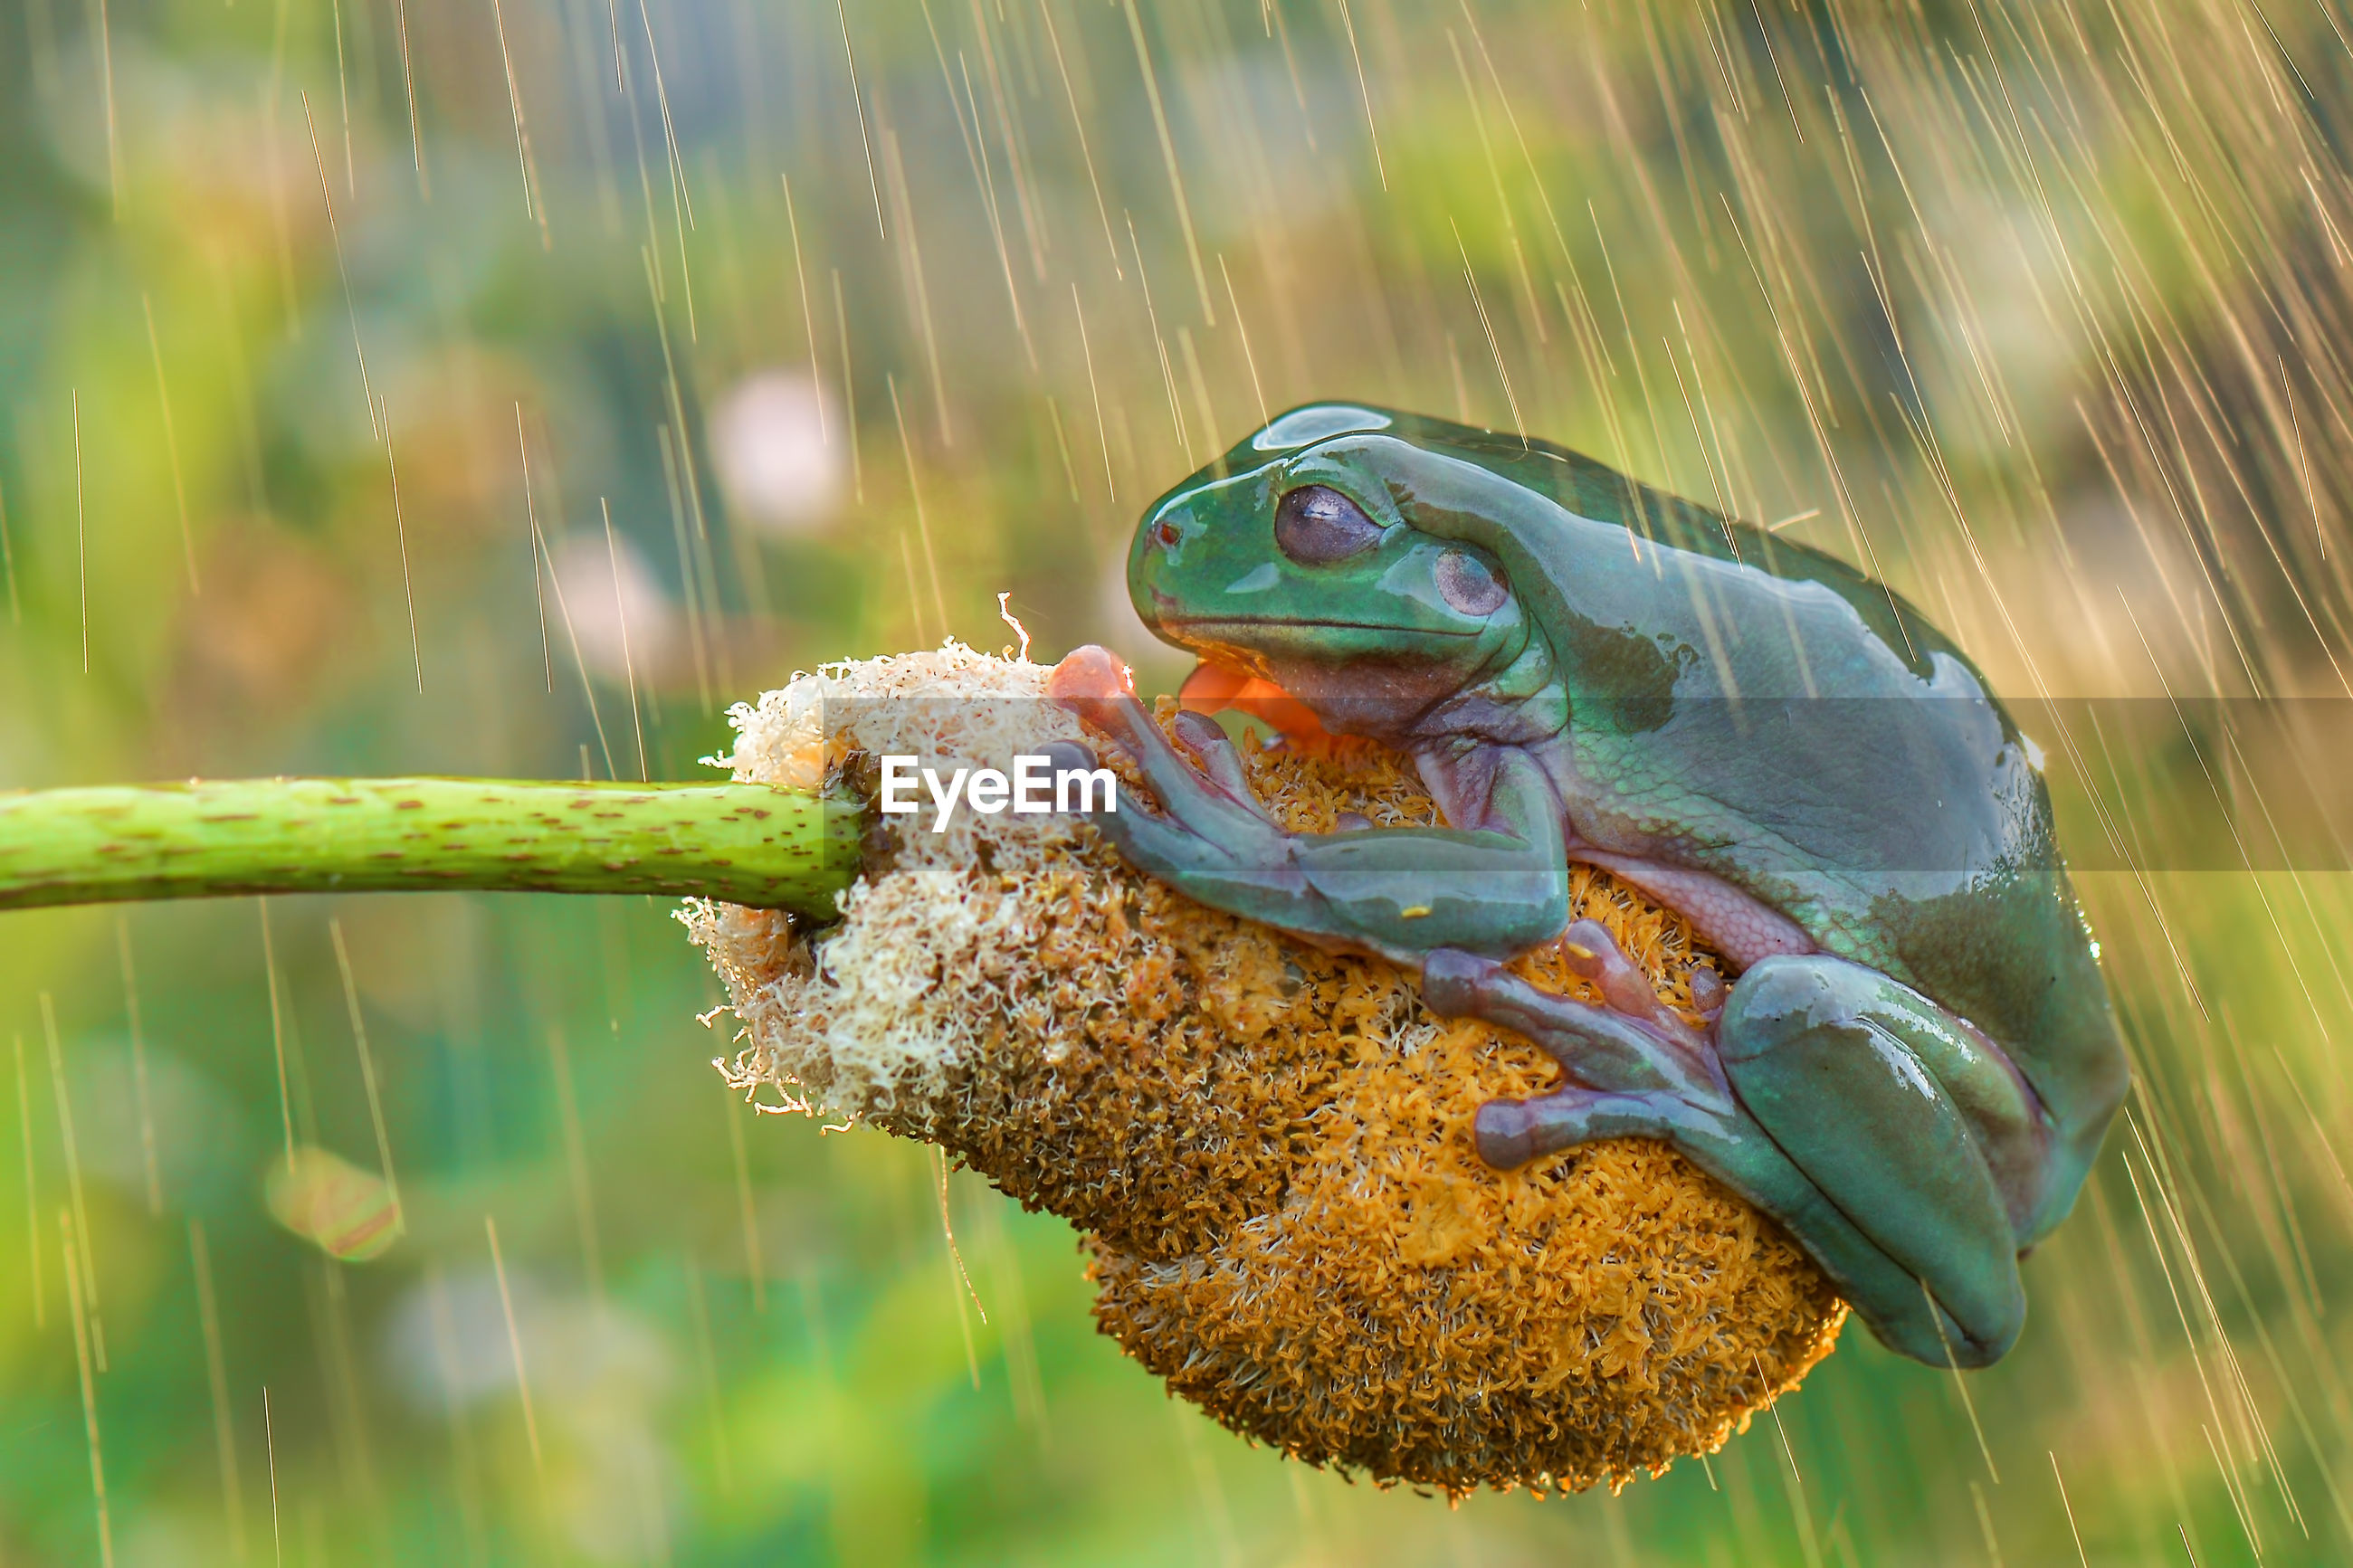 Close-up of green frog on yellow flower during rainy season